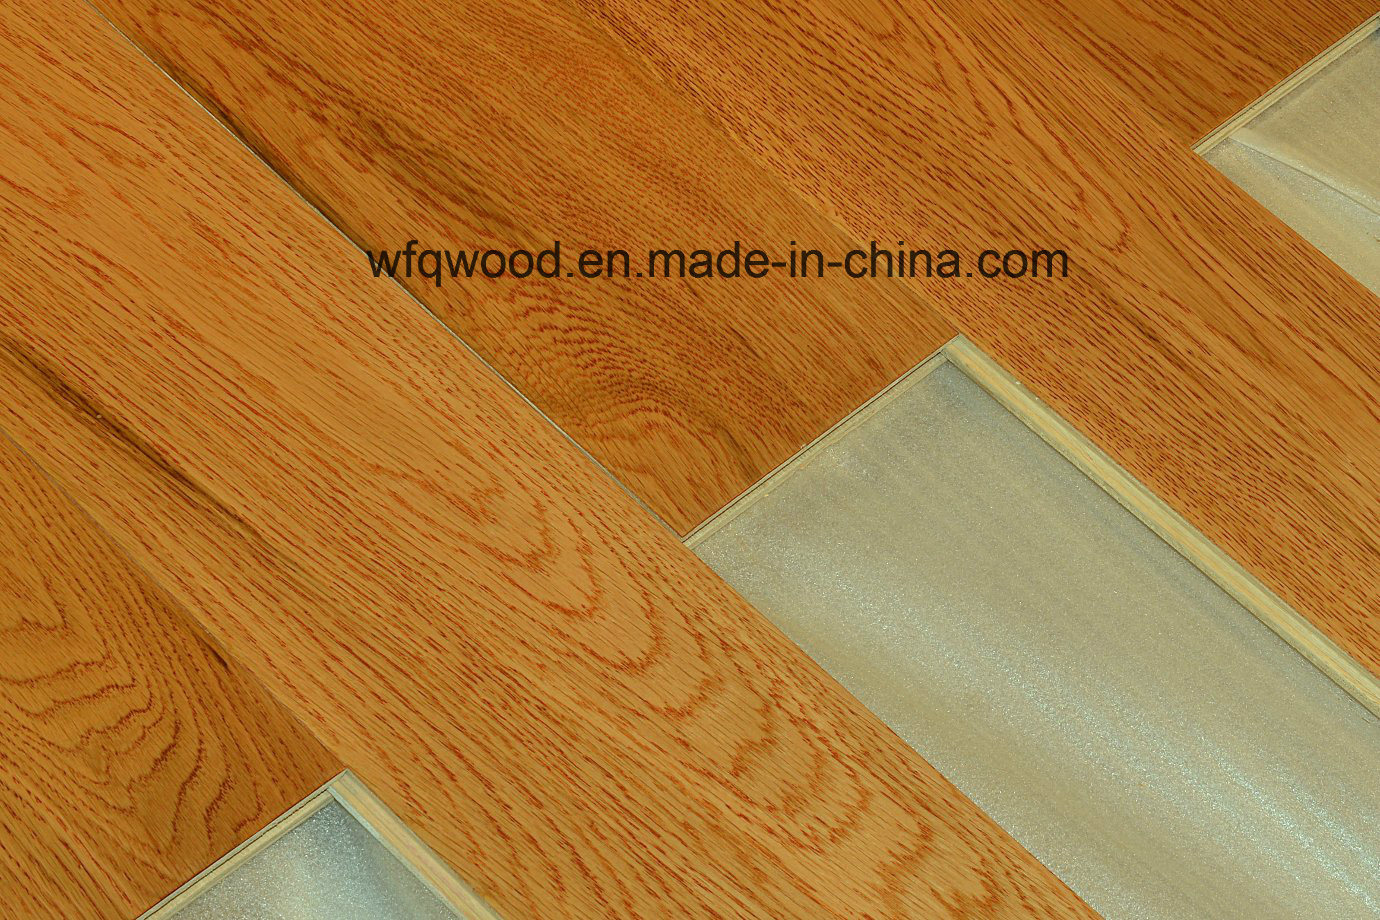 105 Multilayer Oak Wood Flooring